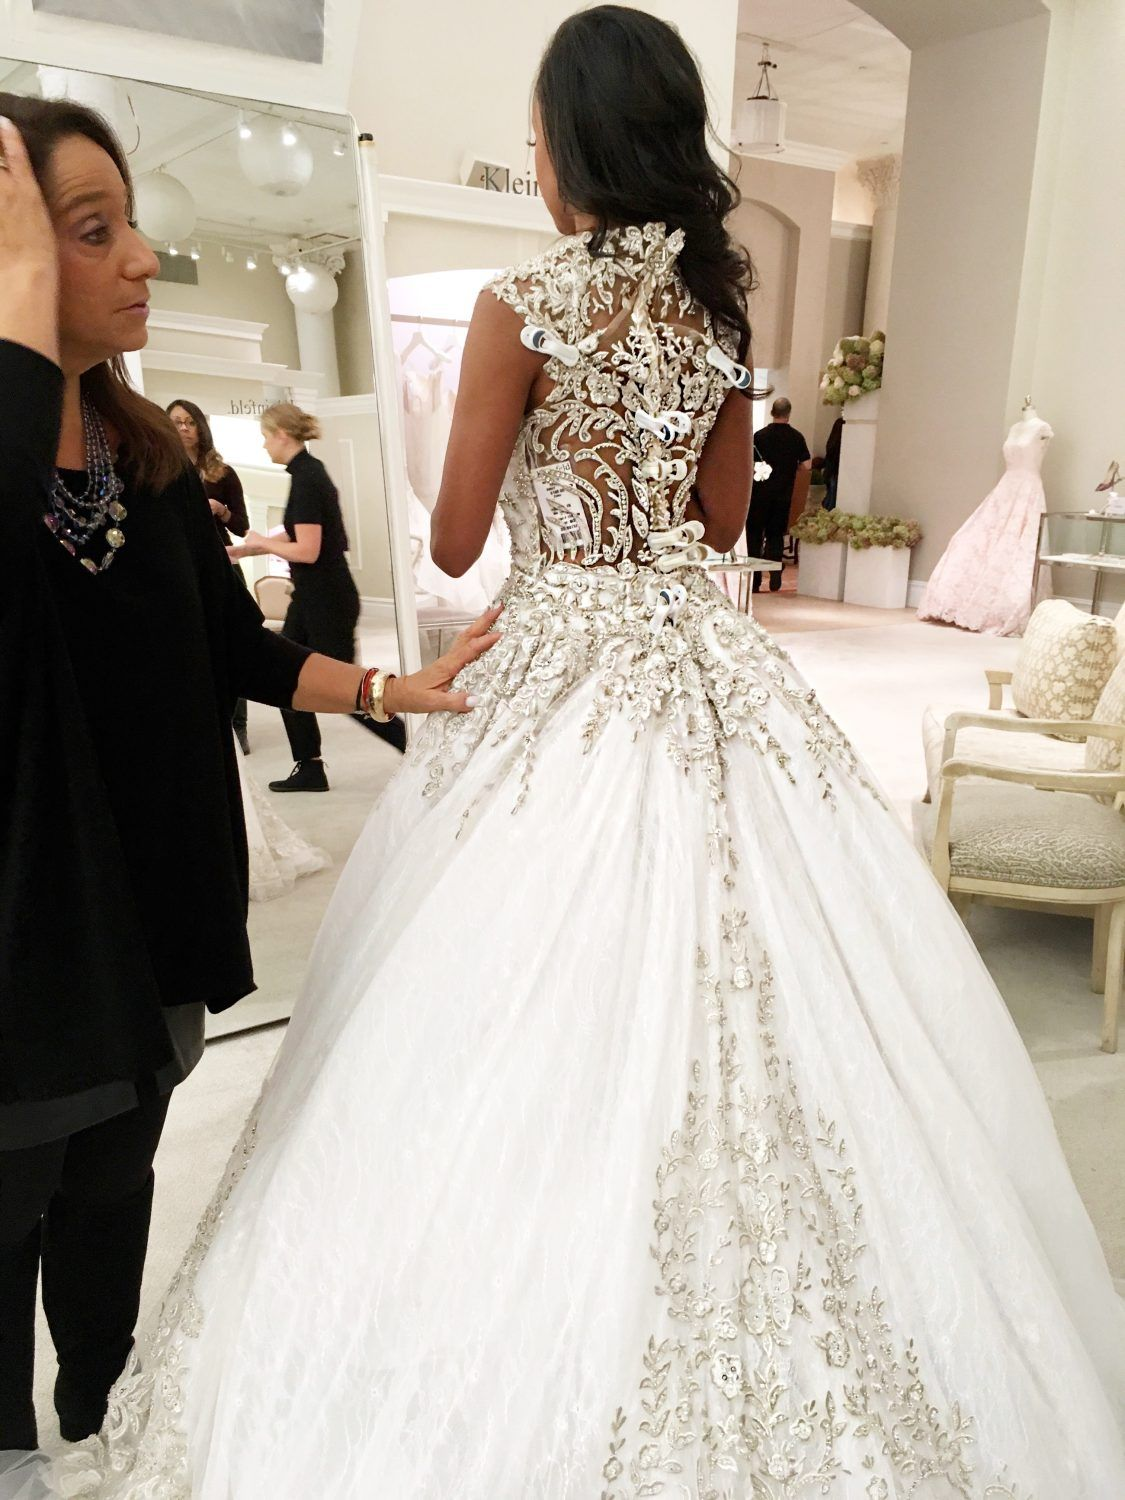 Kleinfeld Bridal  Wedding Dress  How to find the perfect gown